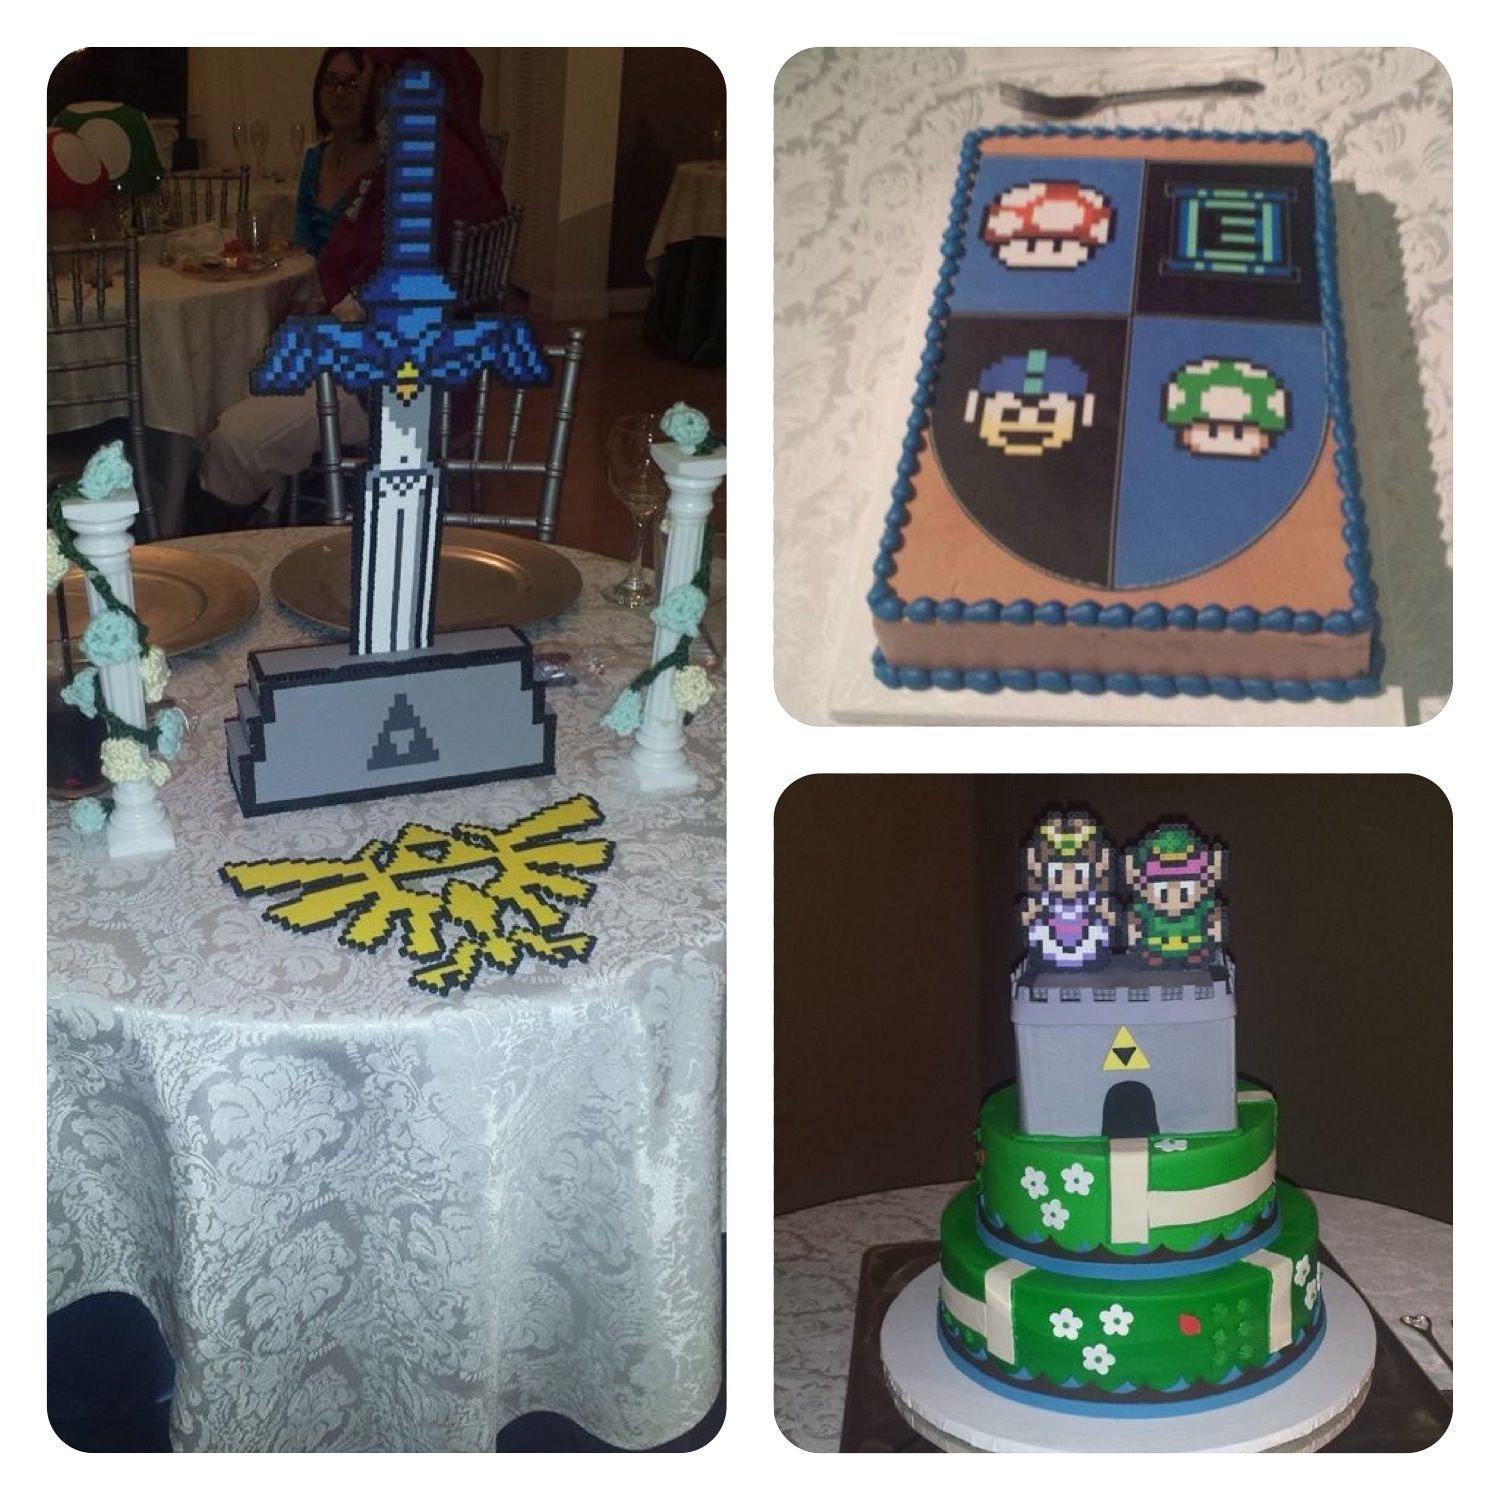 Best 25 Video Game Logic Ideas On Pinterest: Best 25+ Video Game Wedding Ideas On Pinterest